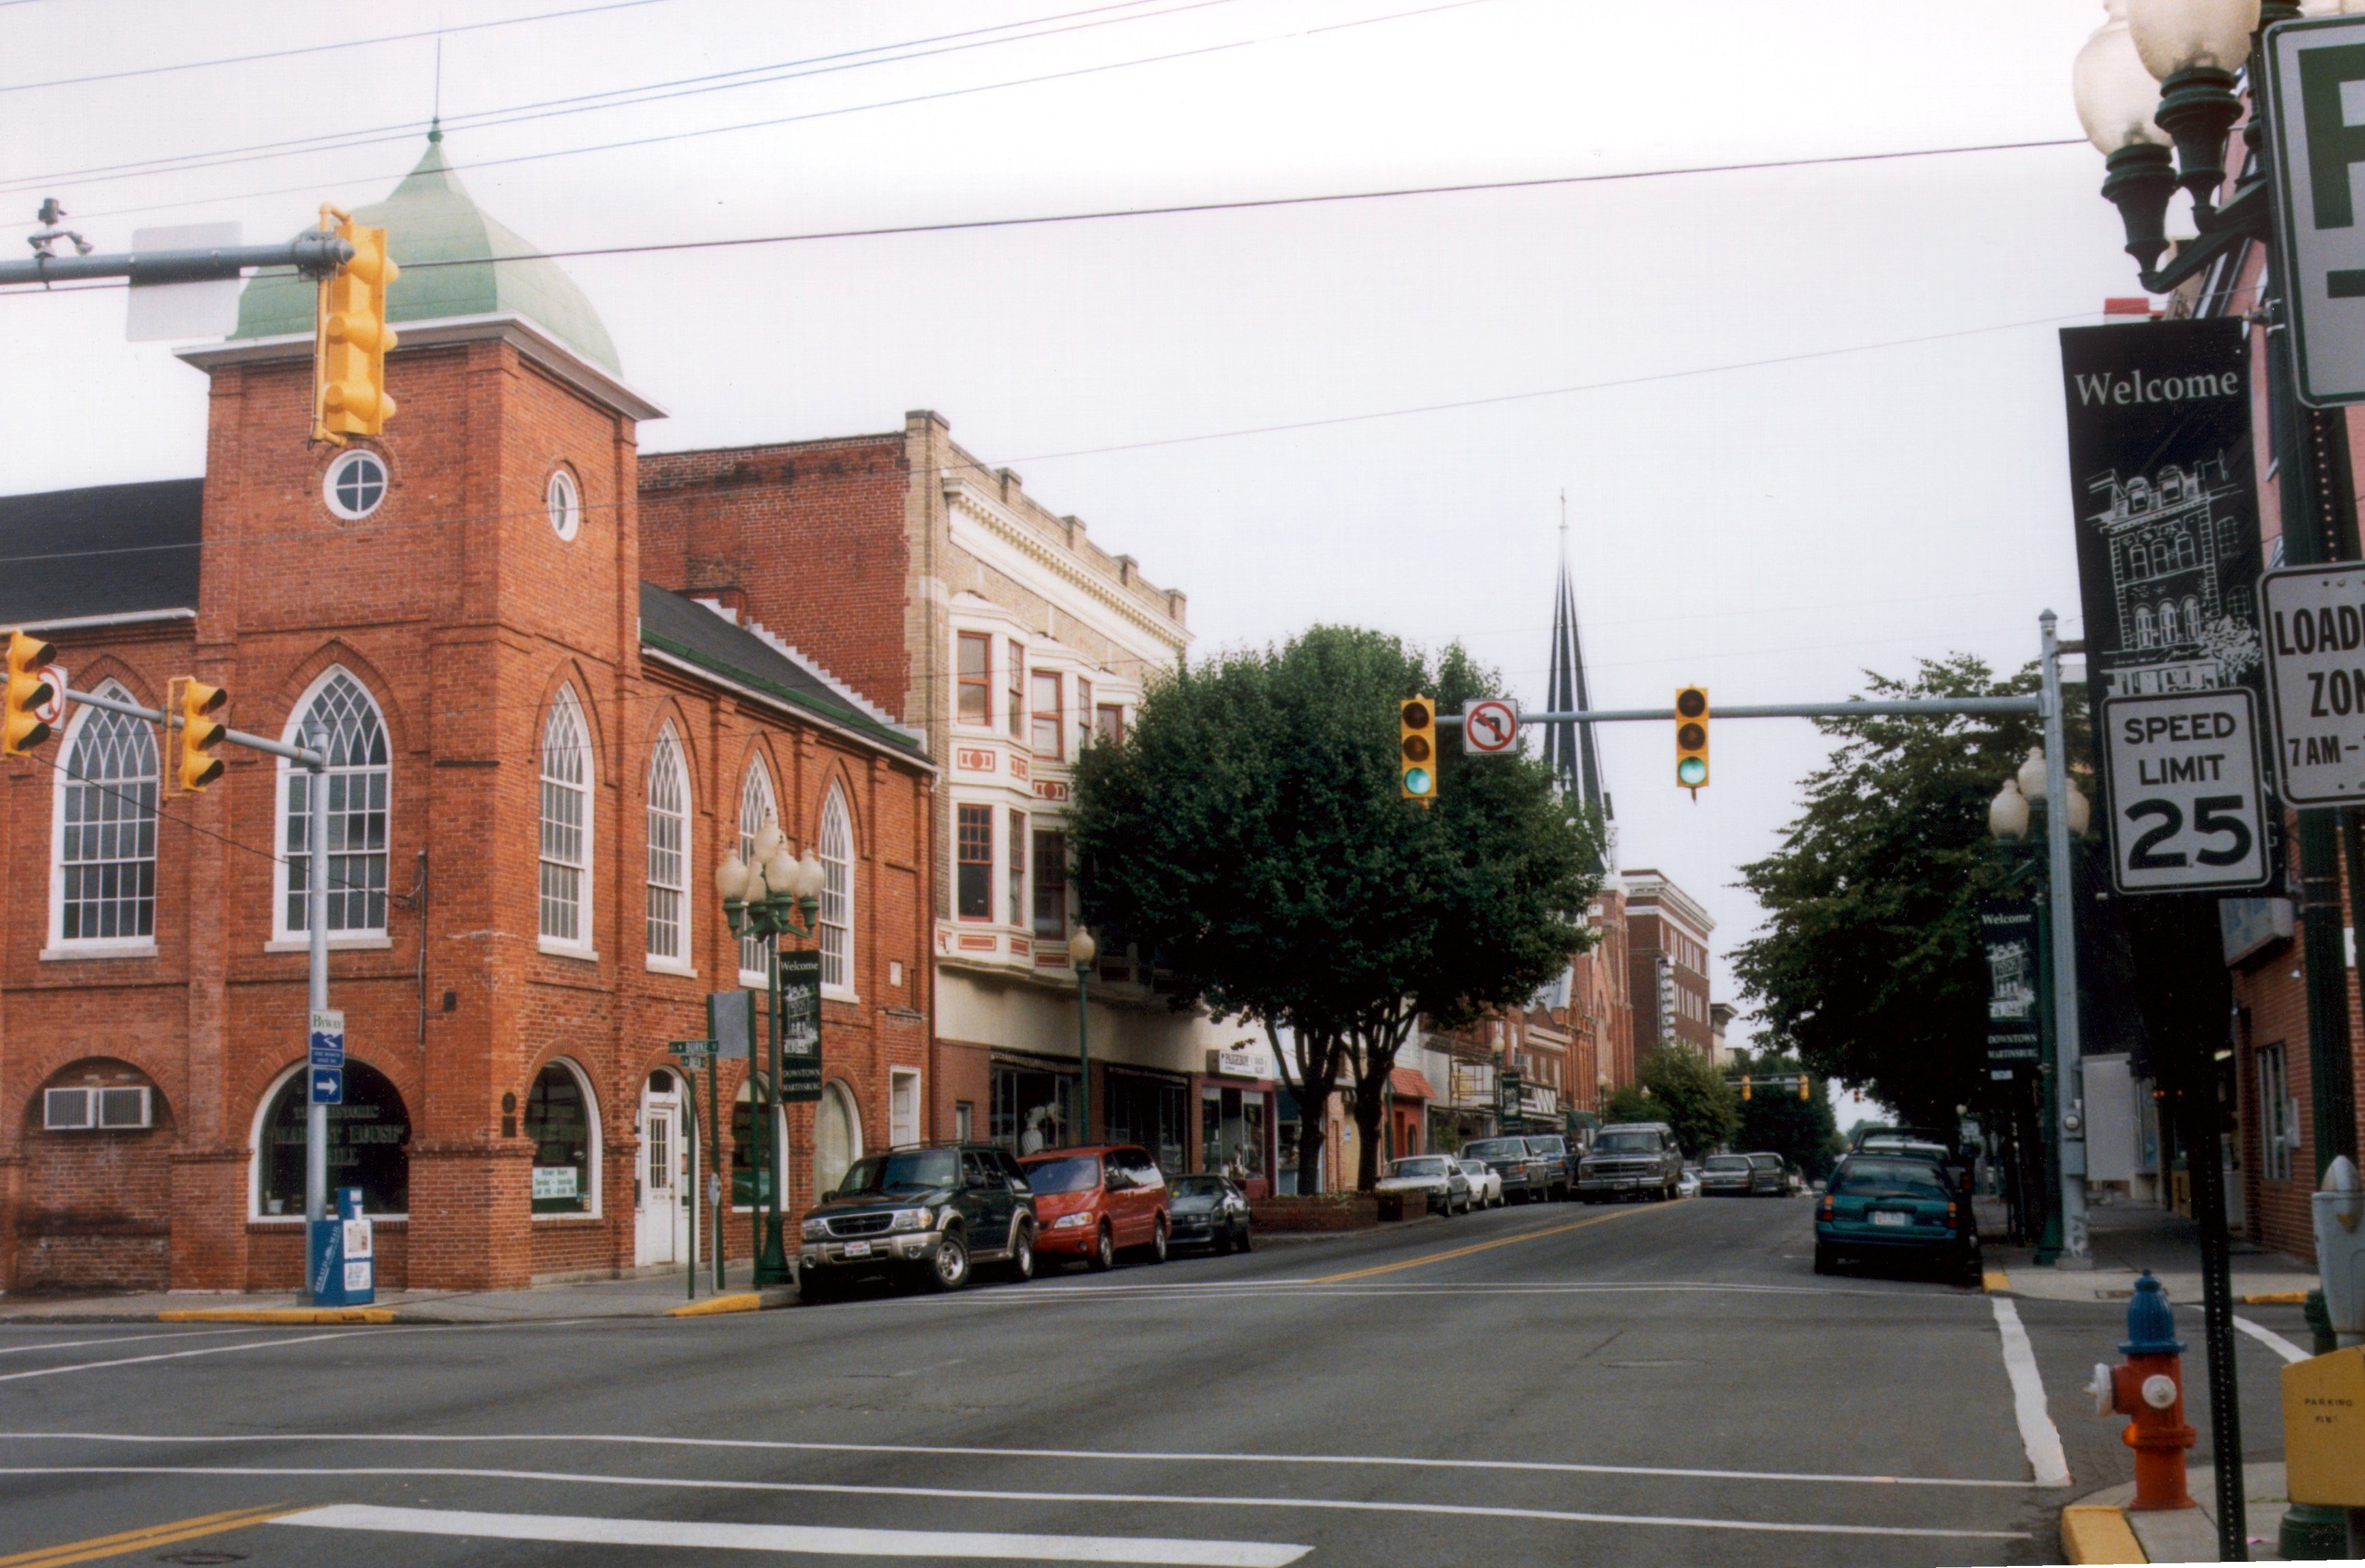 tennessee ridge black singles City of tennessee ridge, tn - houston county tennessee zip codes detailed information on every zip code in tennessee ridge.